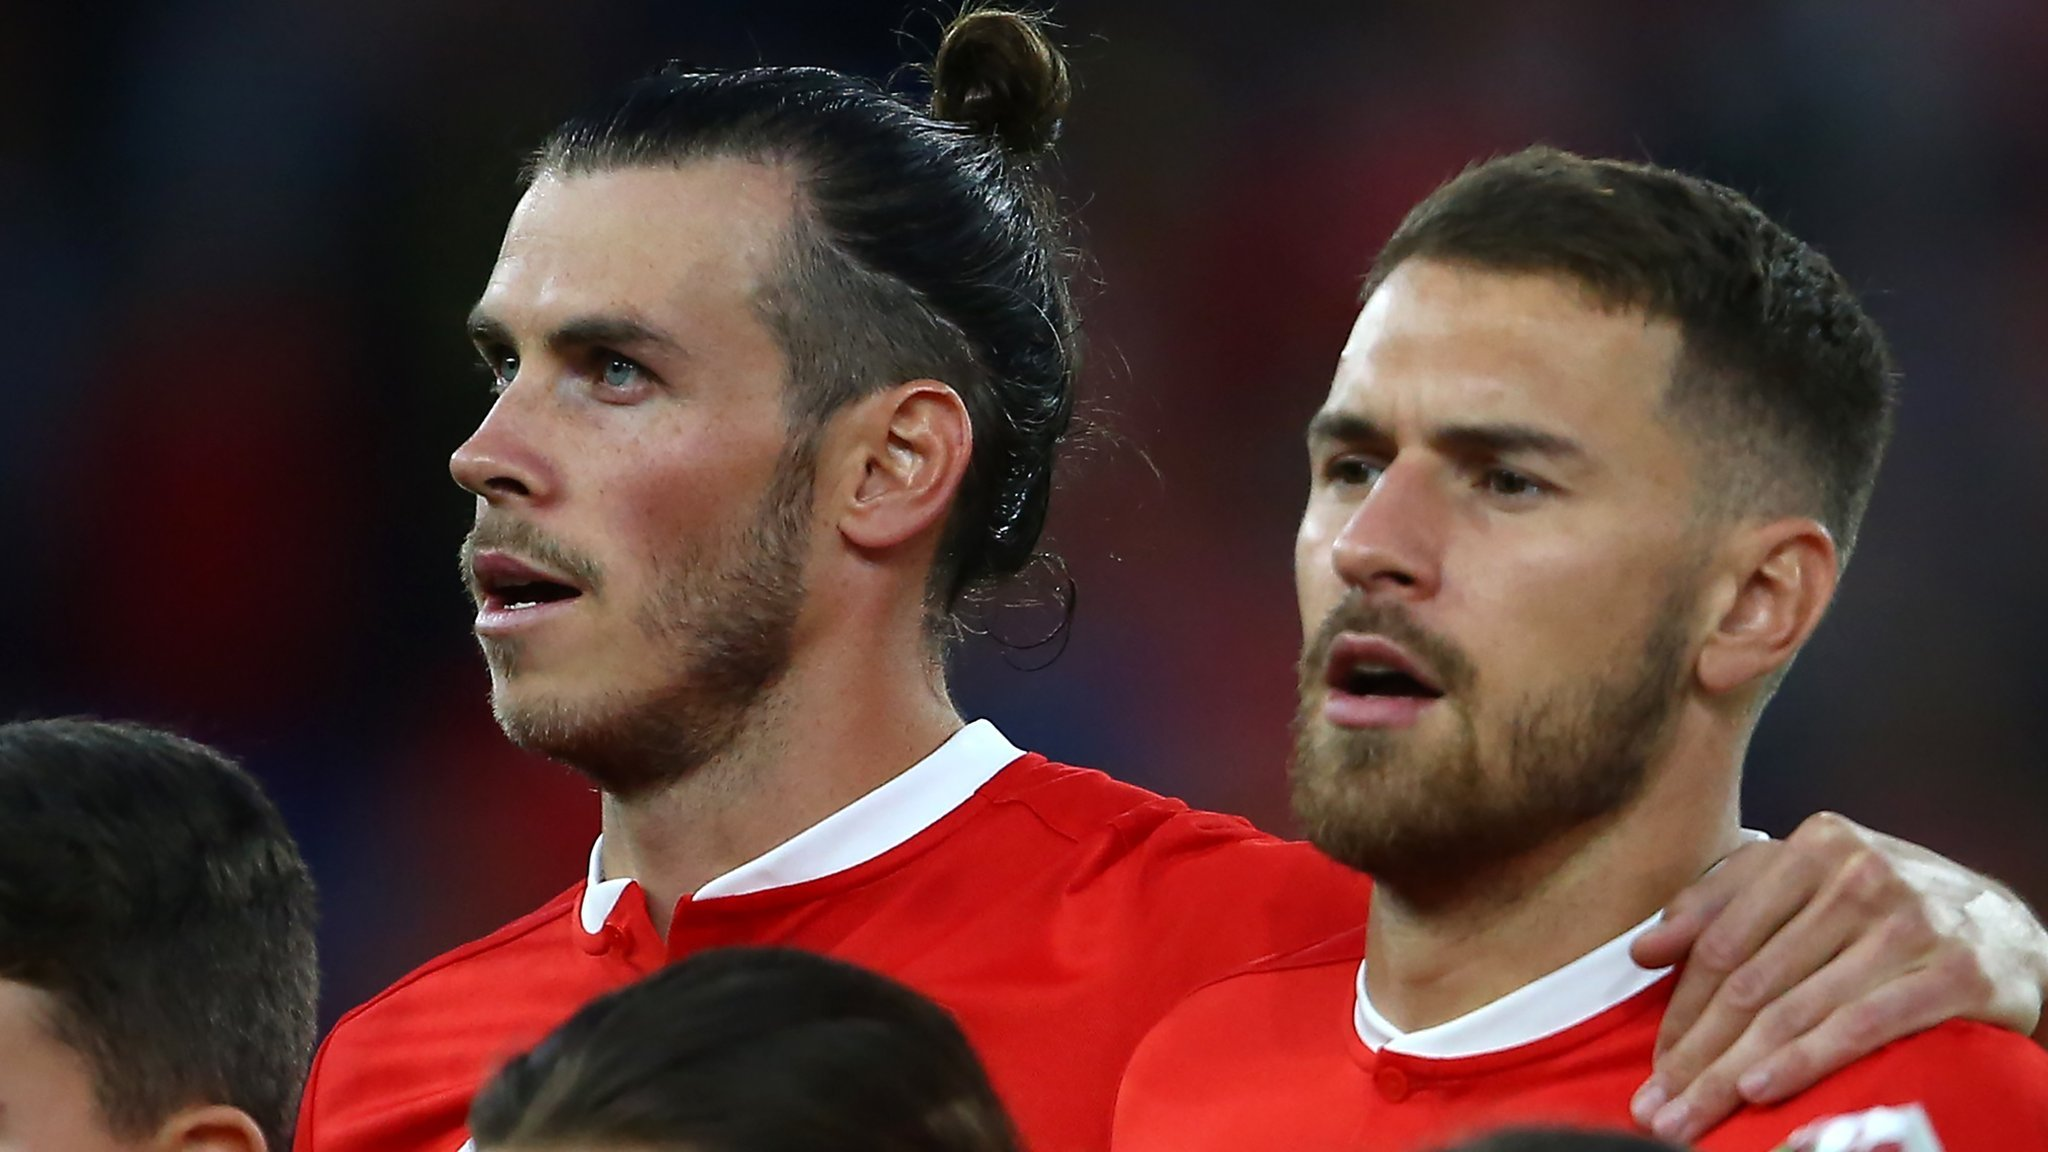 Win over Republic shows Wales can cope without Bale & Ramsey - Allen